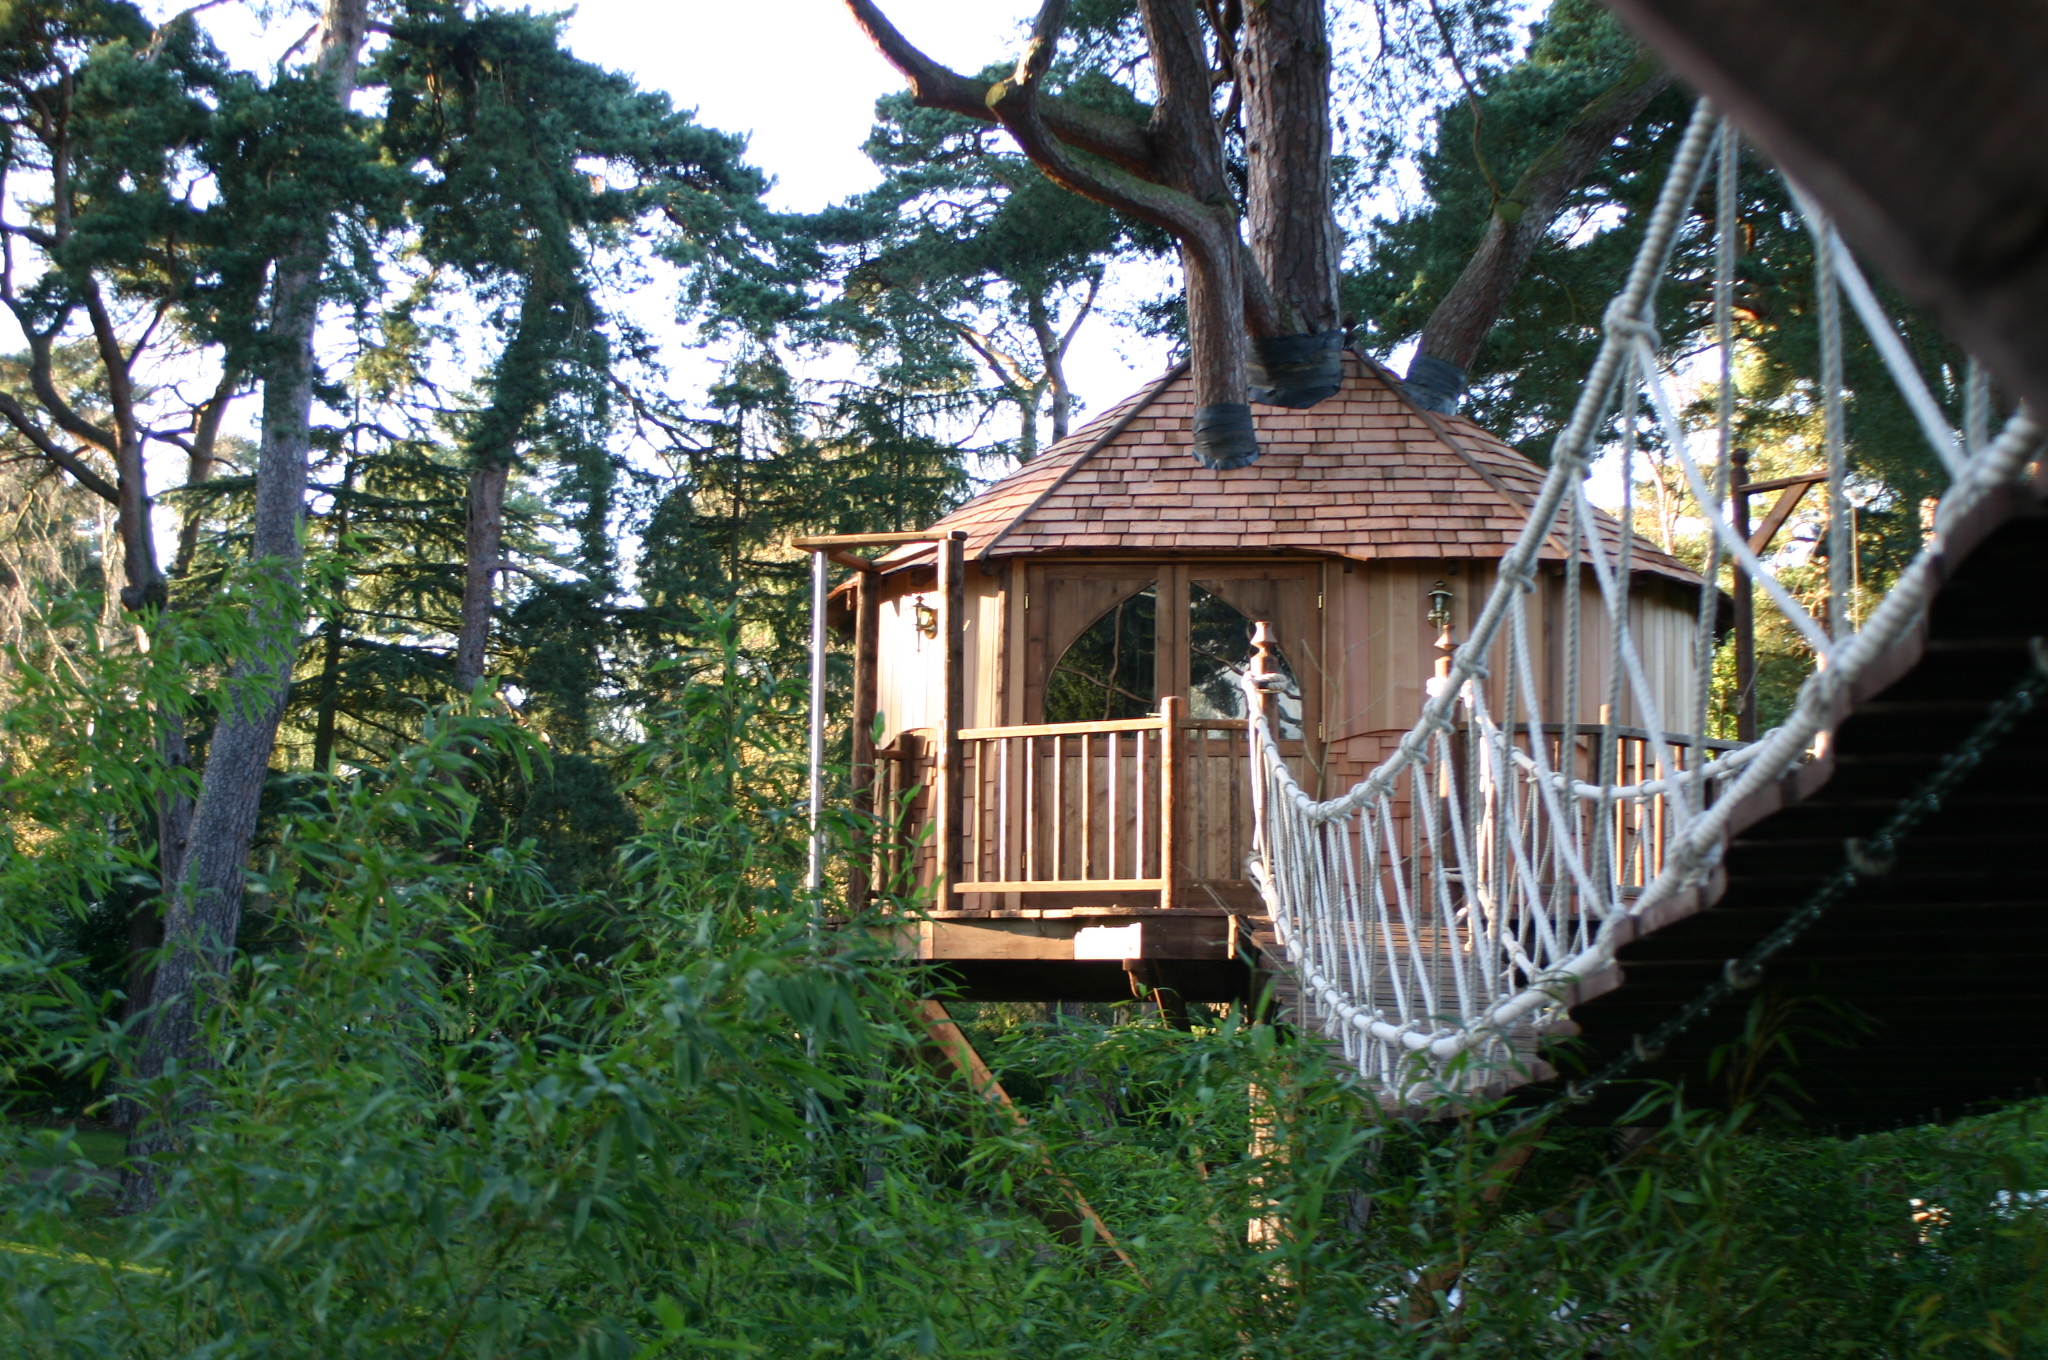 View across rope bridge to tree house